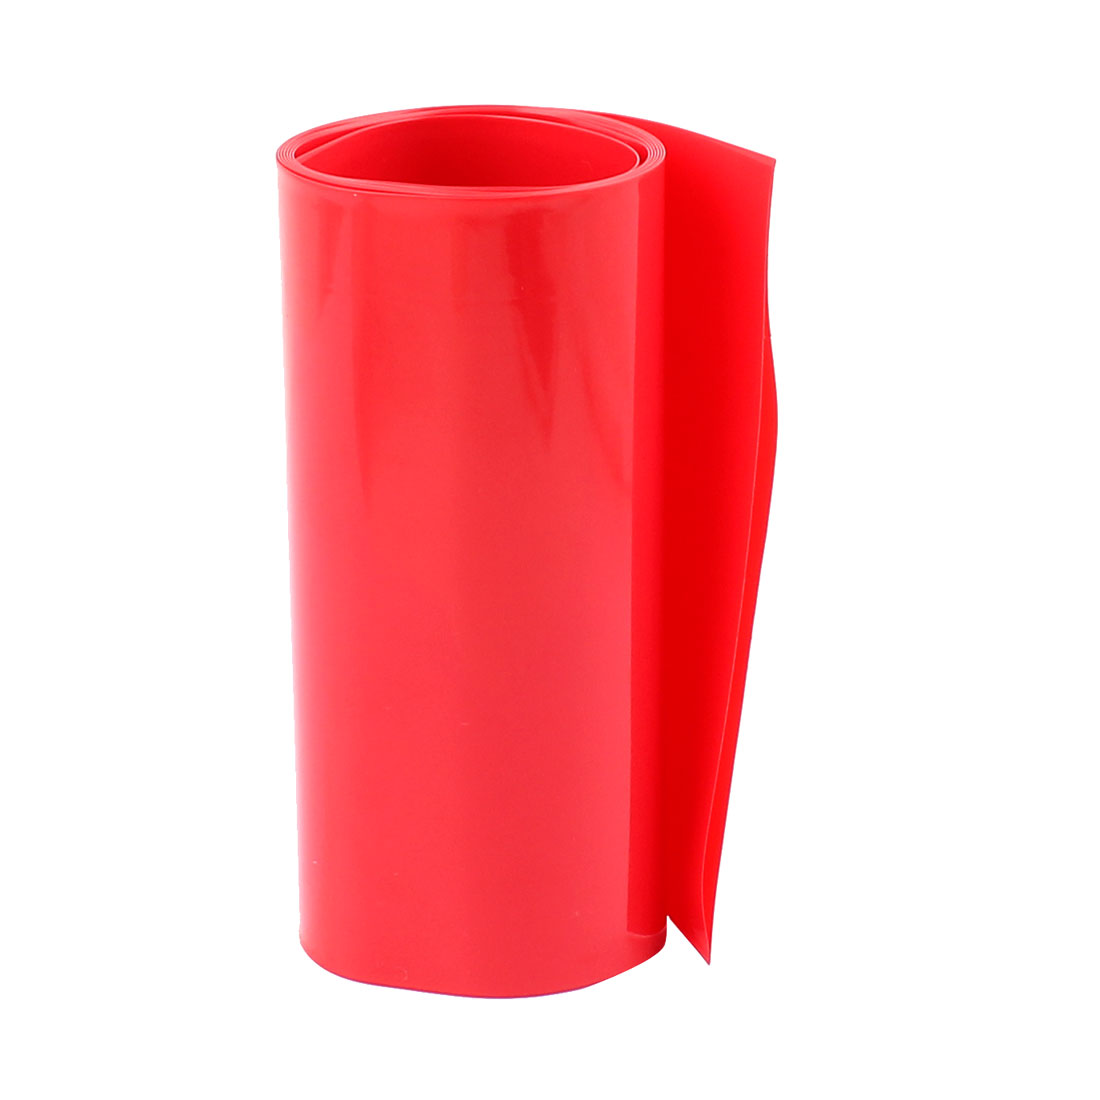 3.3ft 103mm Flat 65mm Dia PVC Heat Shrink Tubing Red for 18650 Battery